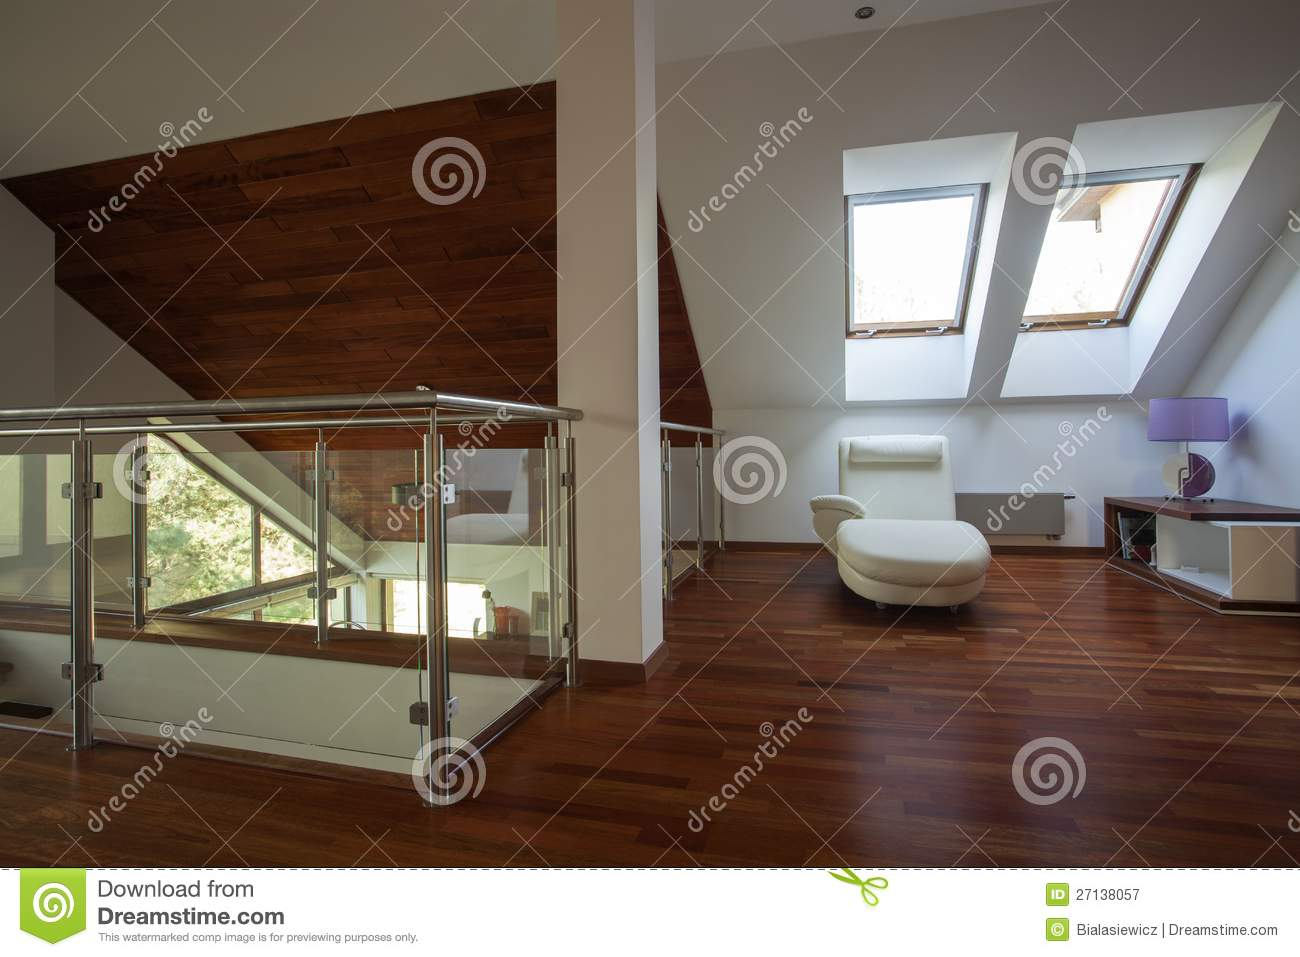 ideas for finished attics - Mezanino Em Uma Casa Moderna Fotografia de Stock Royalty